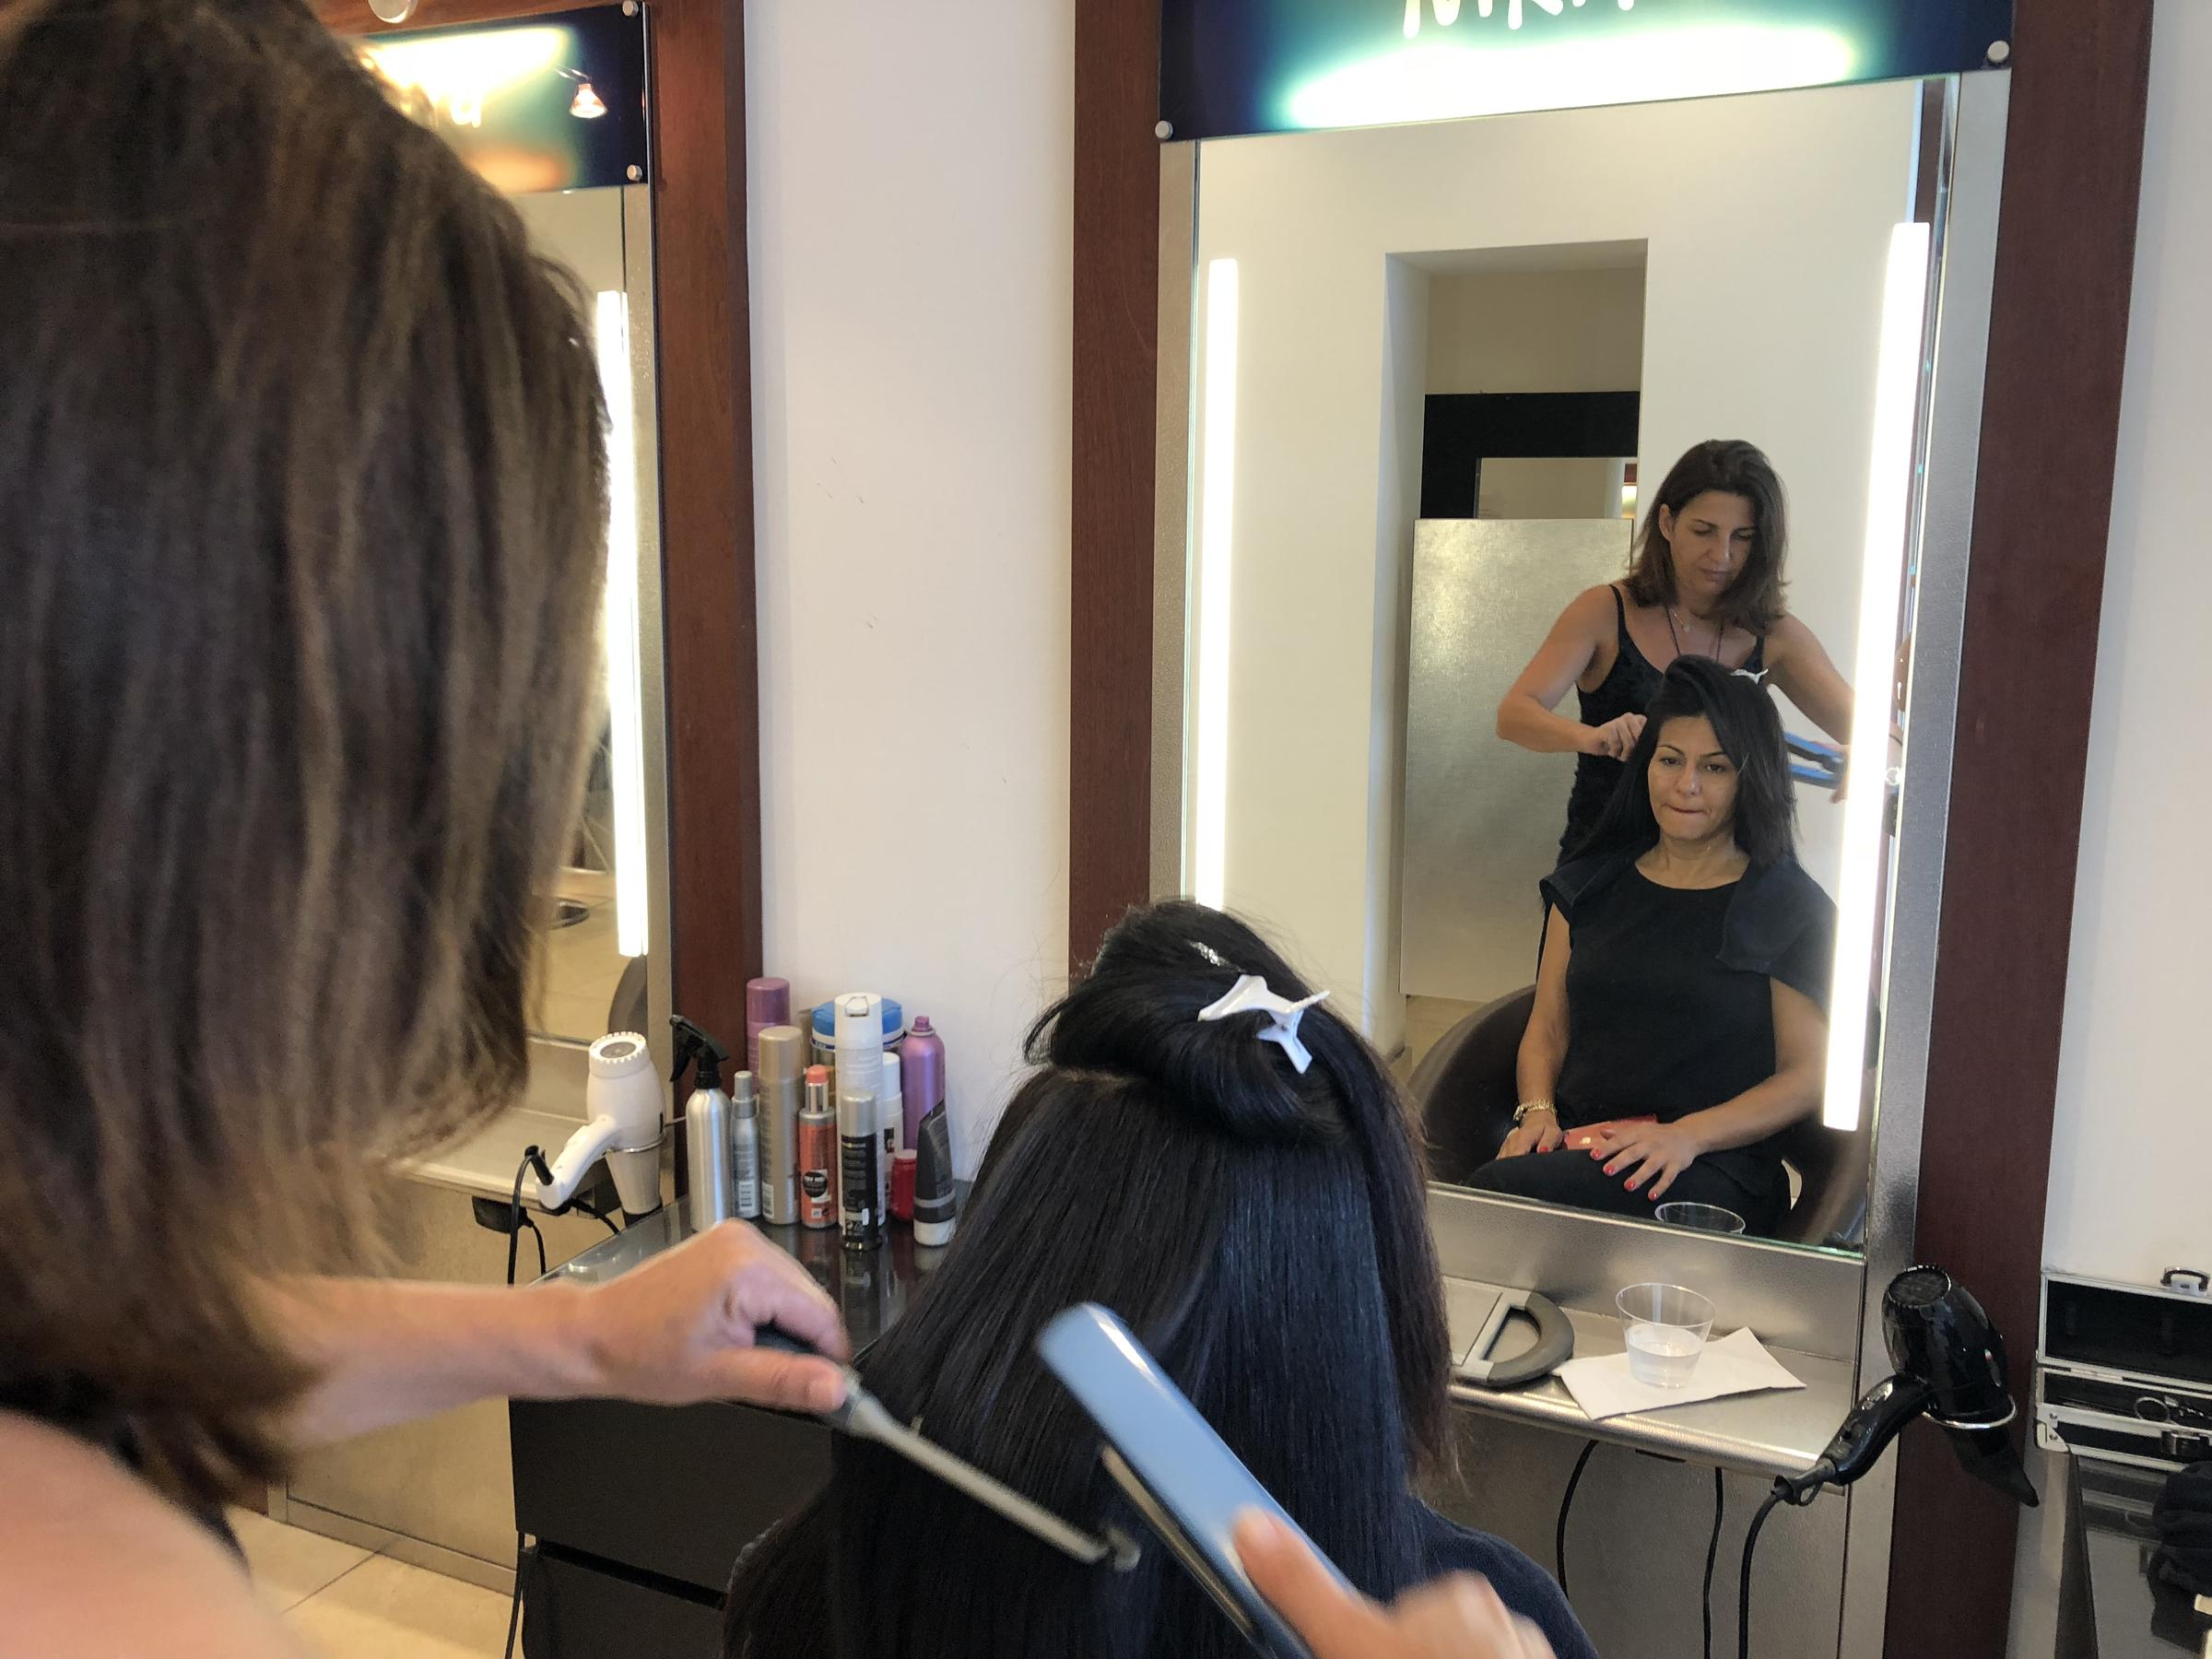 French Beauty Salon Brings European Culture To Miami Wlrn